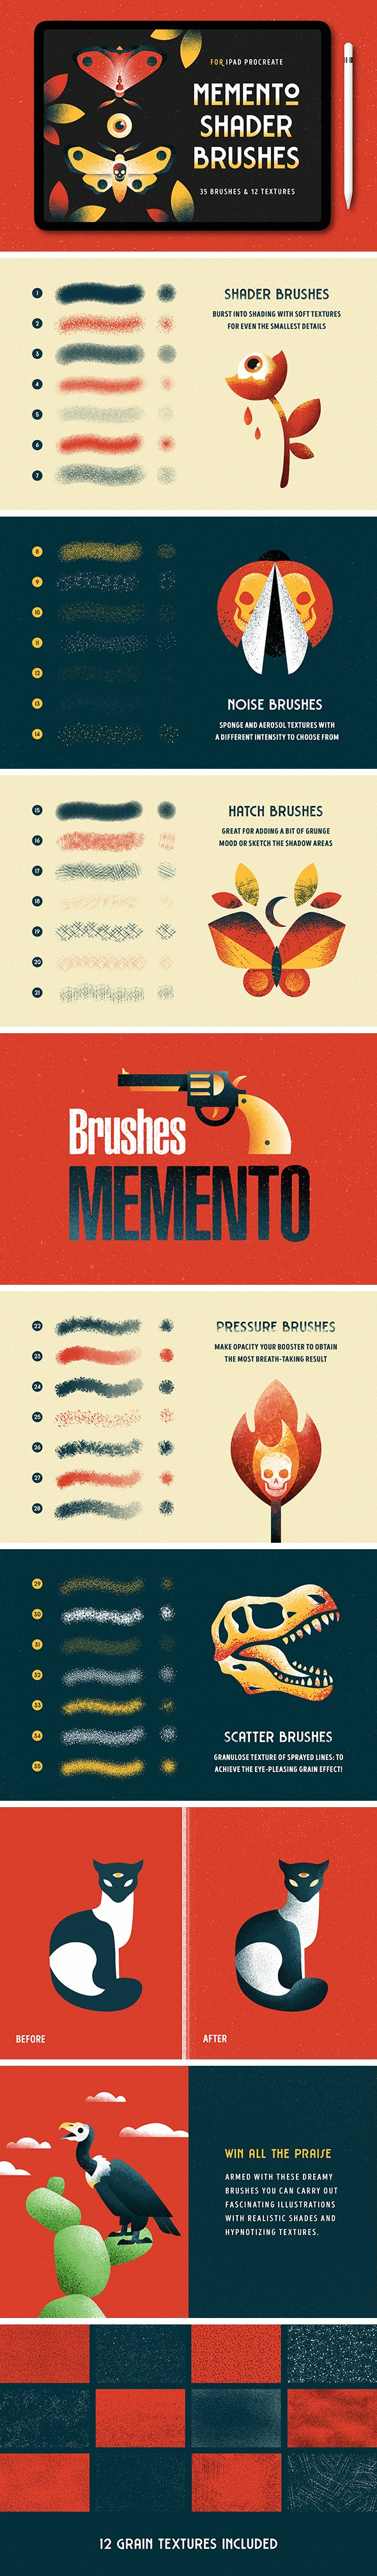 Shader Brushes for Procreate by pixelbuddha_graphic